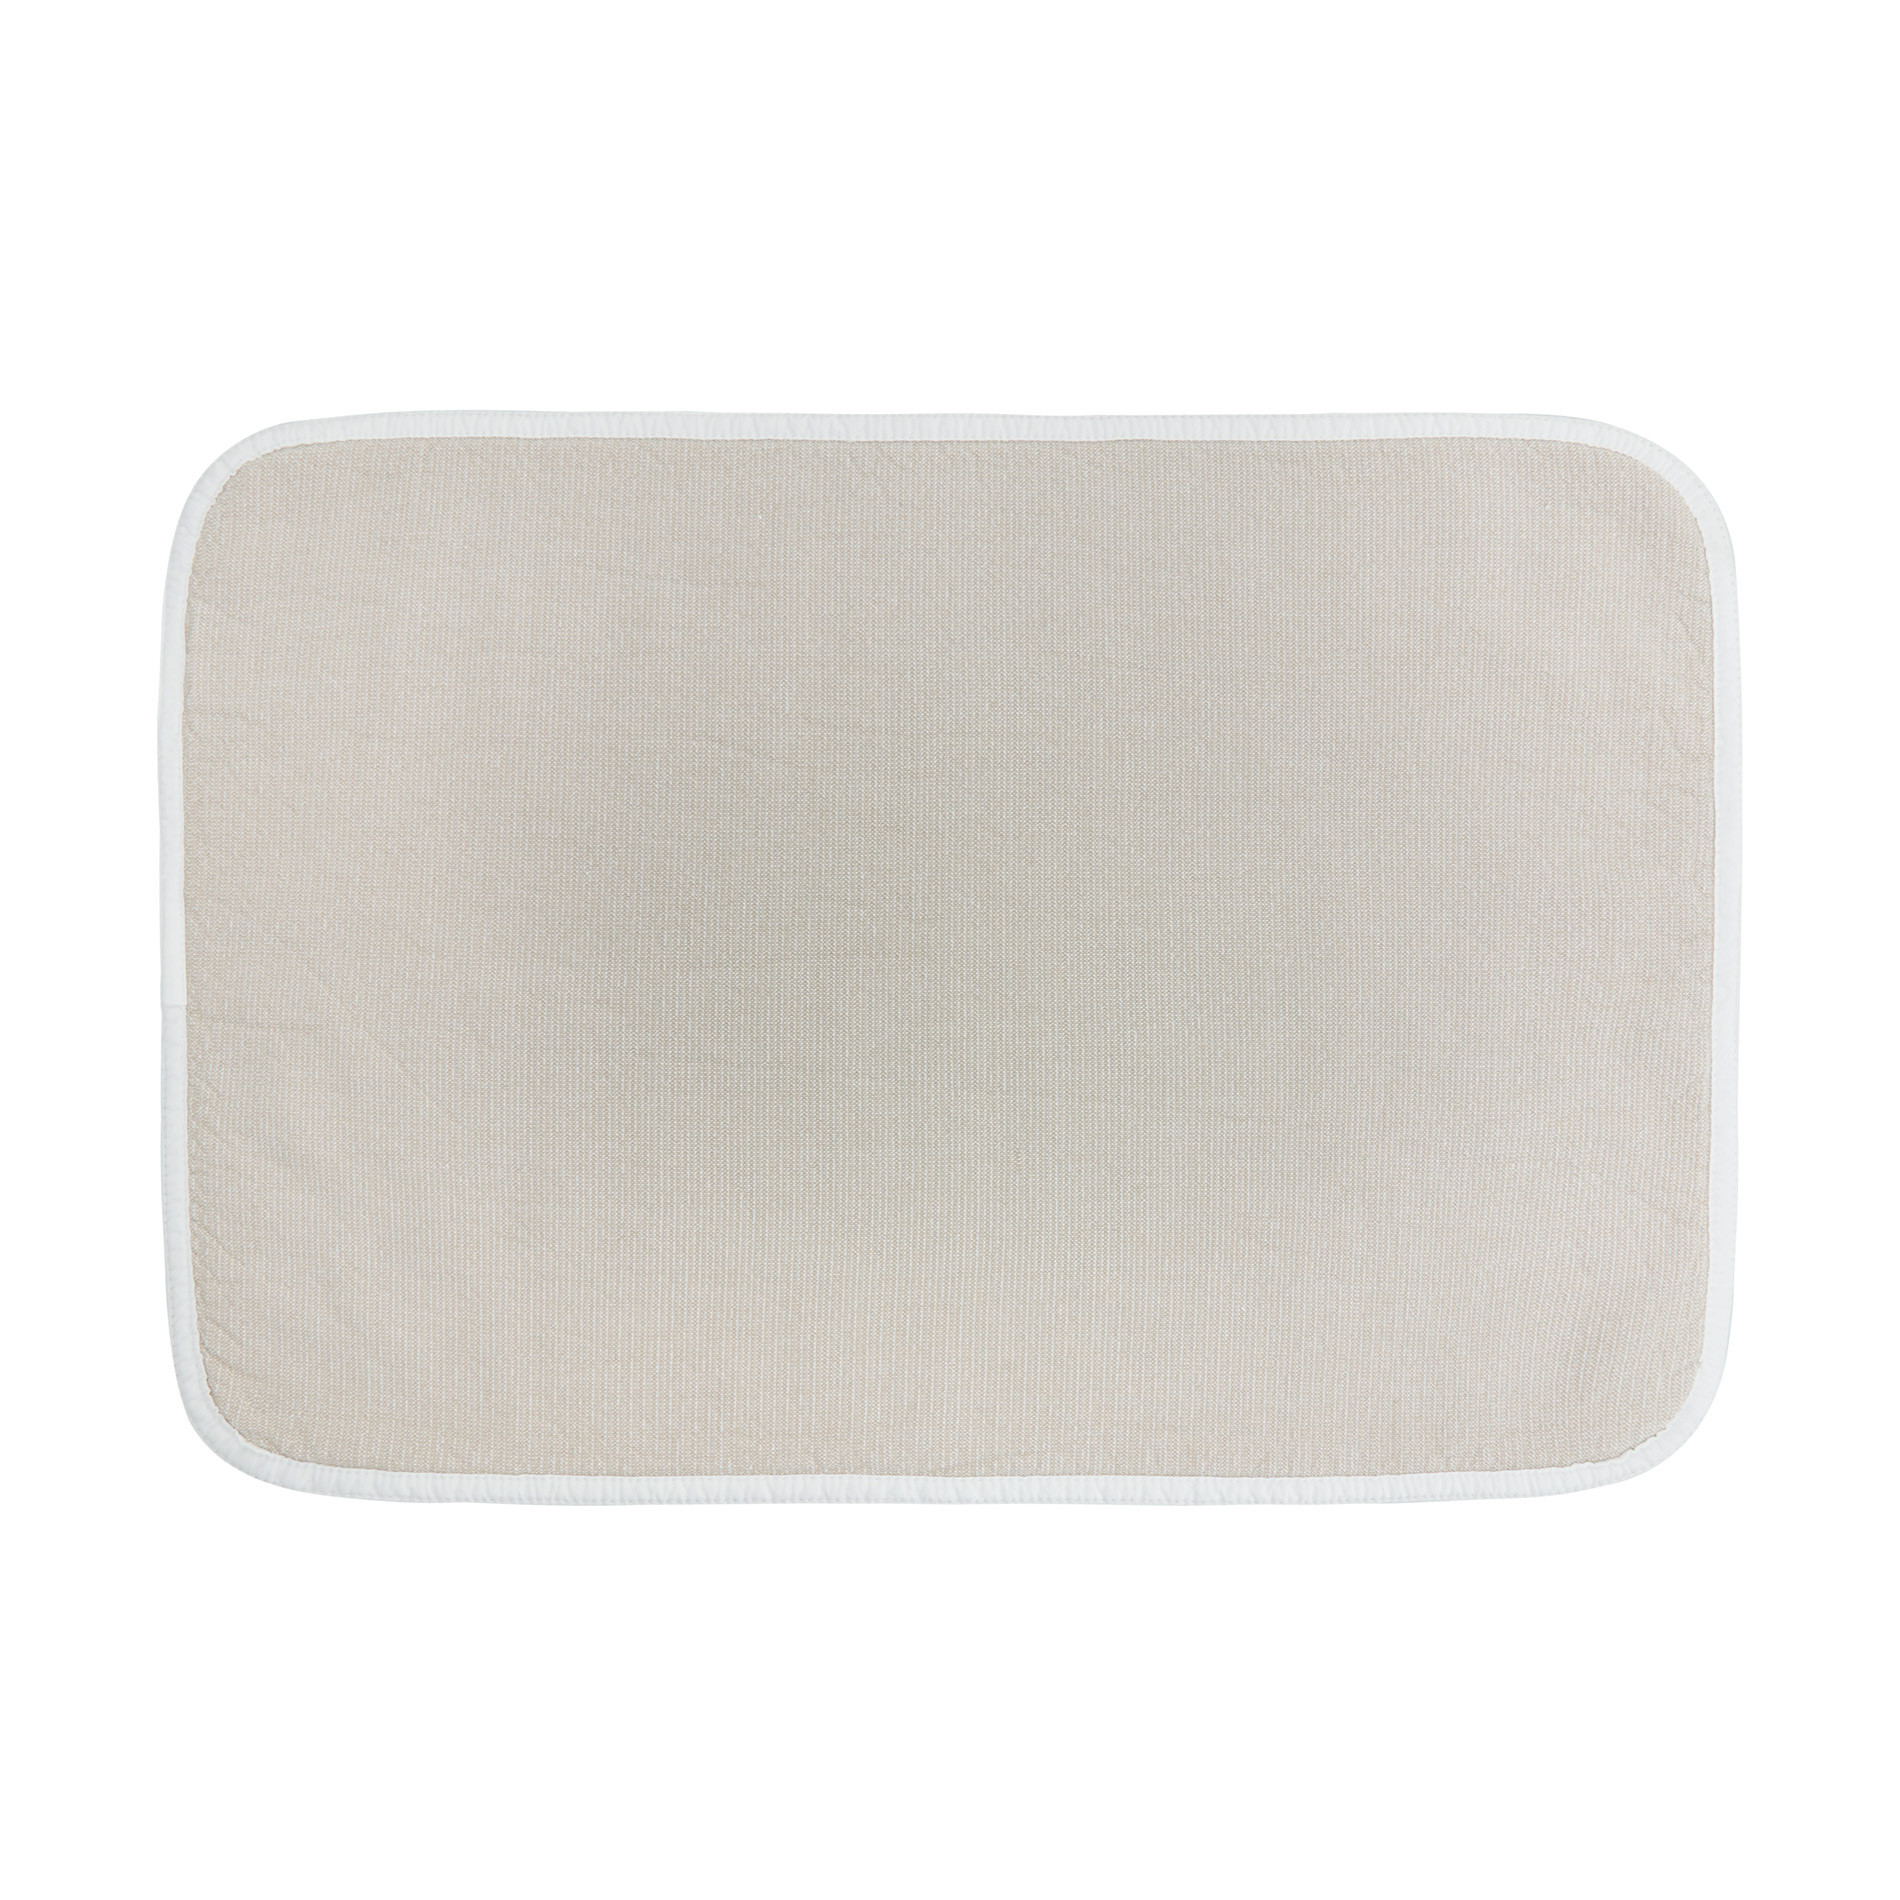 Asciugamano puro cotone double face Thermae, Beige, large image number 2